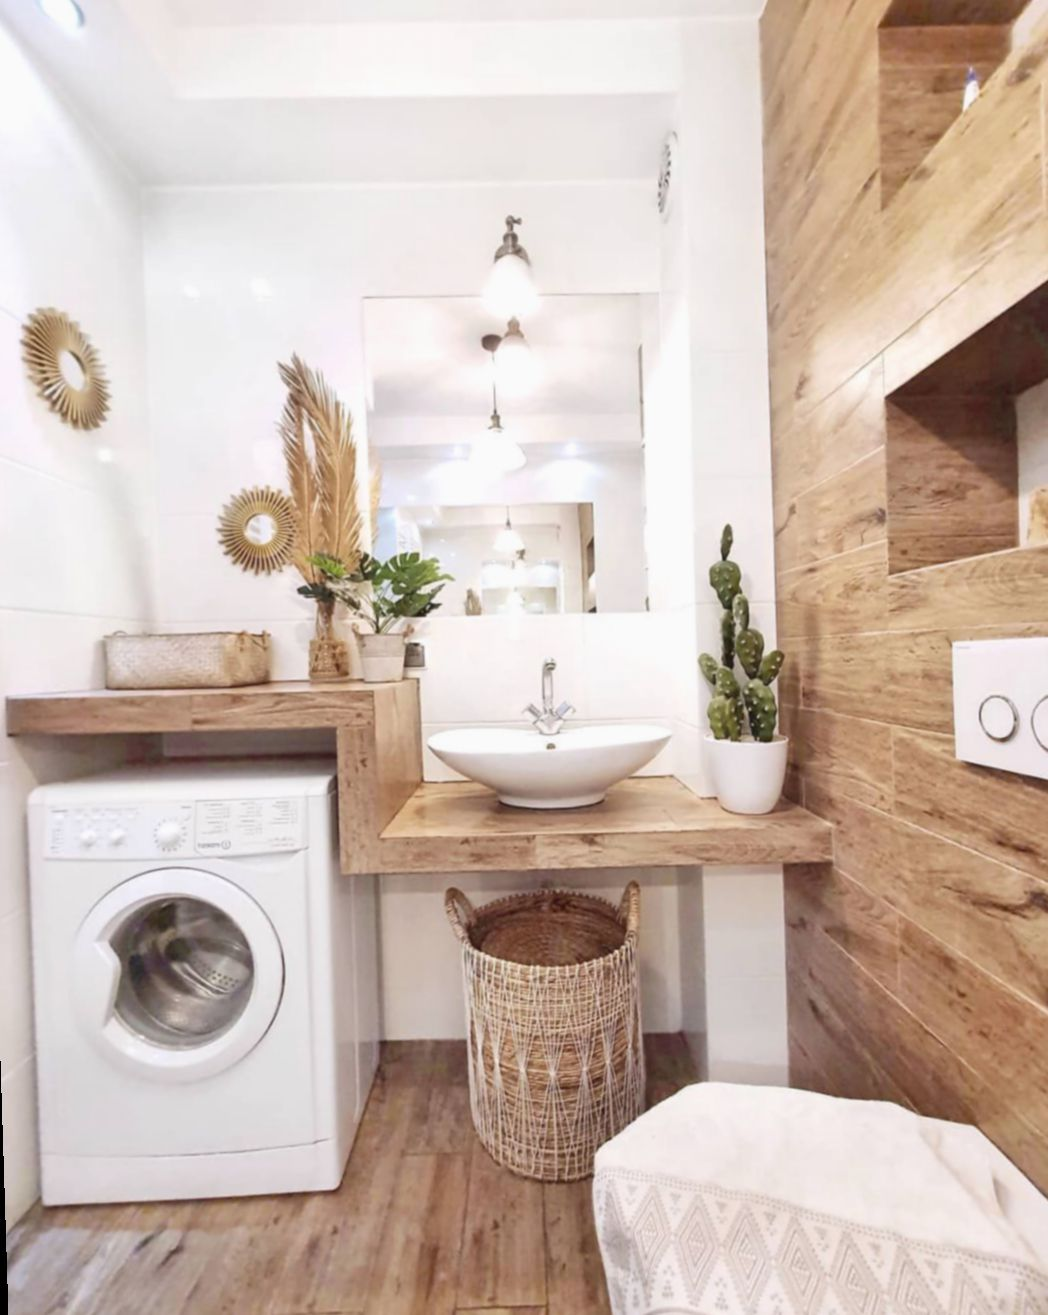 Wooden Bathroom Laundry Rooms This Listing Is For A Set Of 4 Signs Details Listed Below This Beautiful Badeværelsesideer Badeværelse Lille Lejlighedsdesign